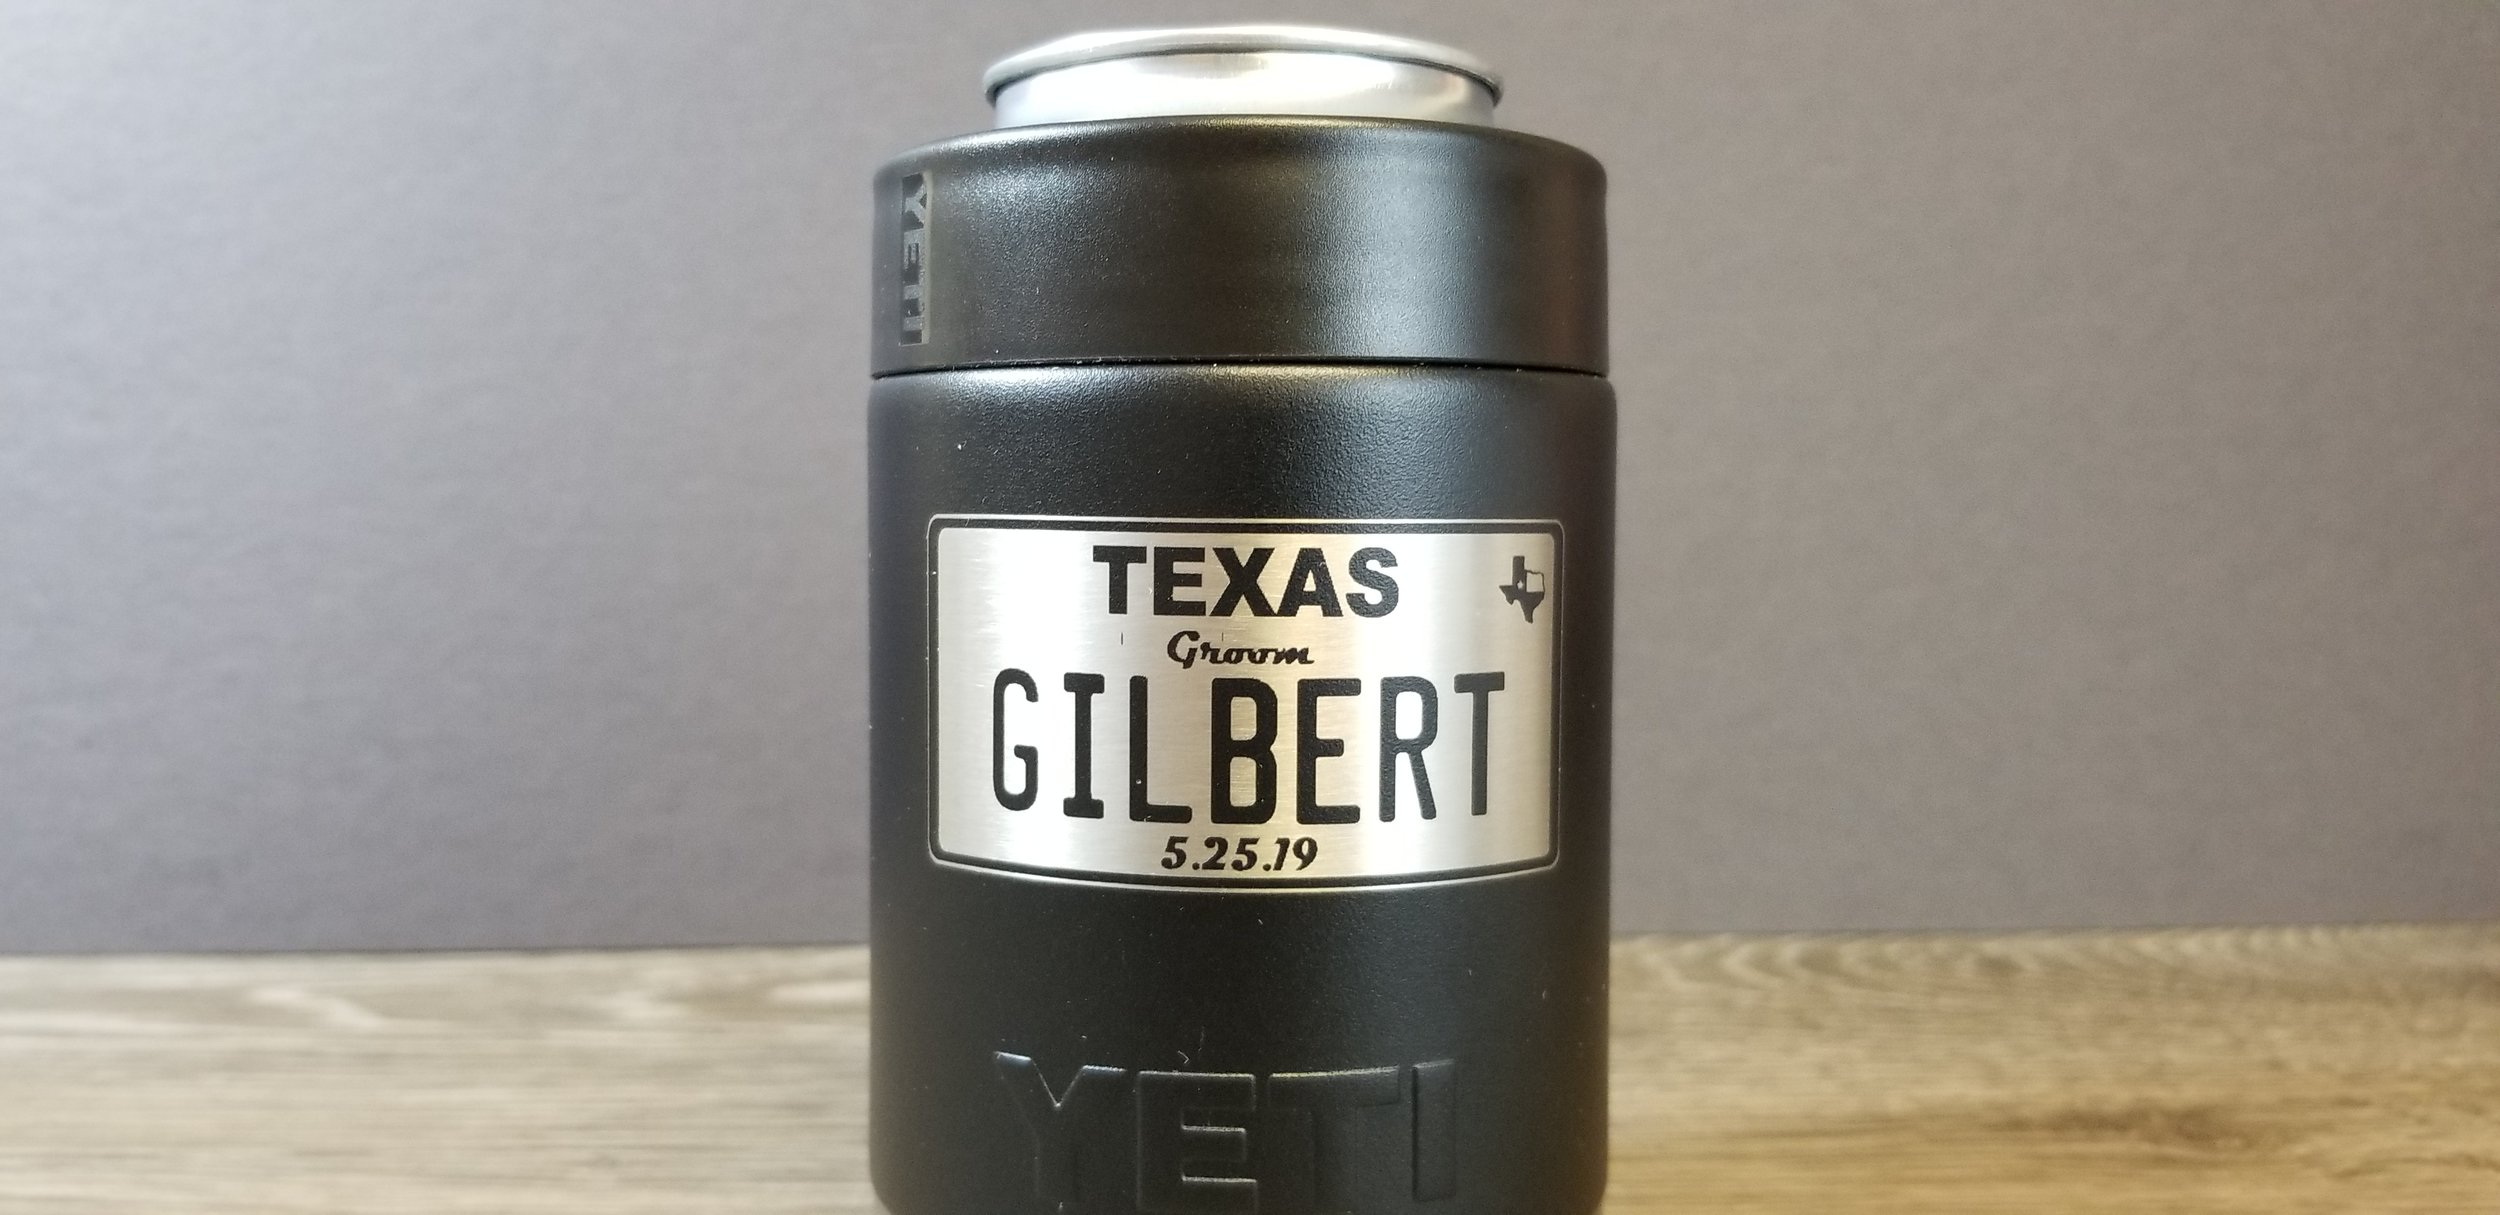 Engraved Yeti Koozie - Engraved Stainless Steel Koozie - Engraved Yeti - Engraved Yeti Can Holder - Tumbler Engraving Services - Engrave It Houston